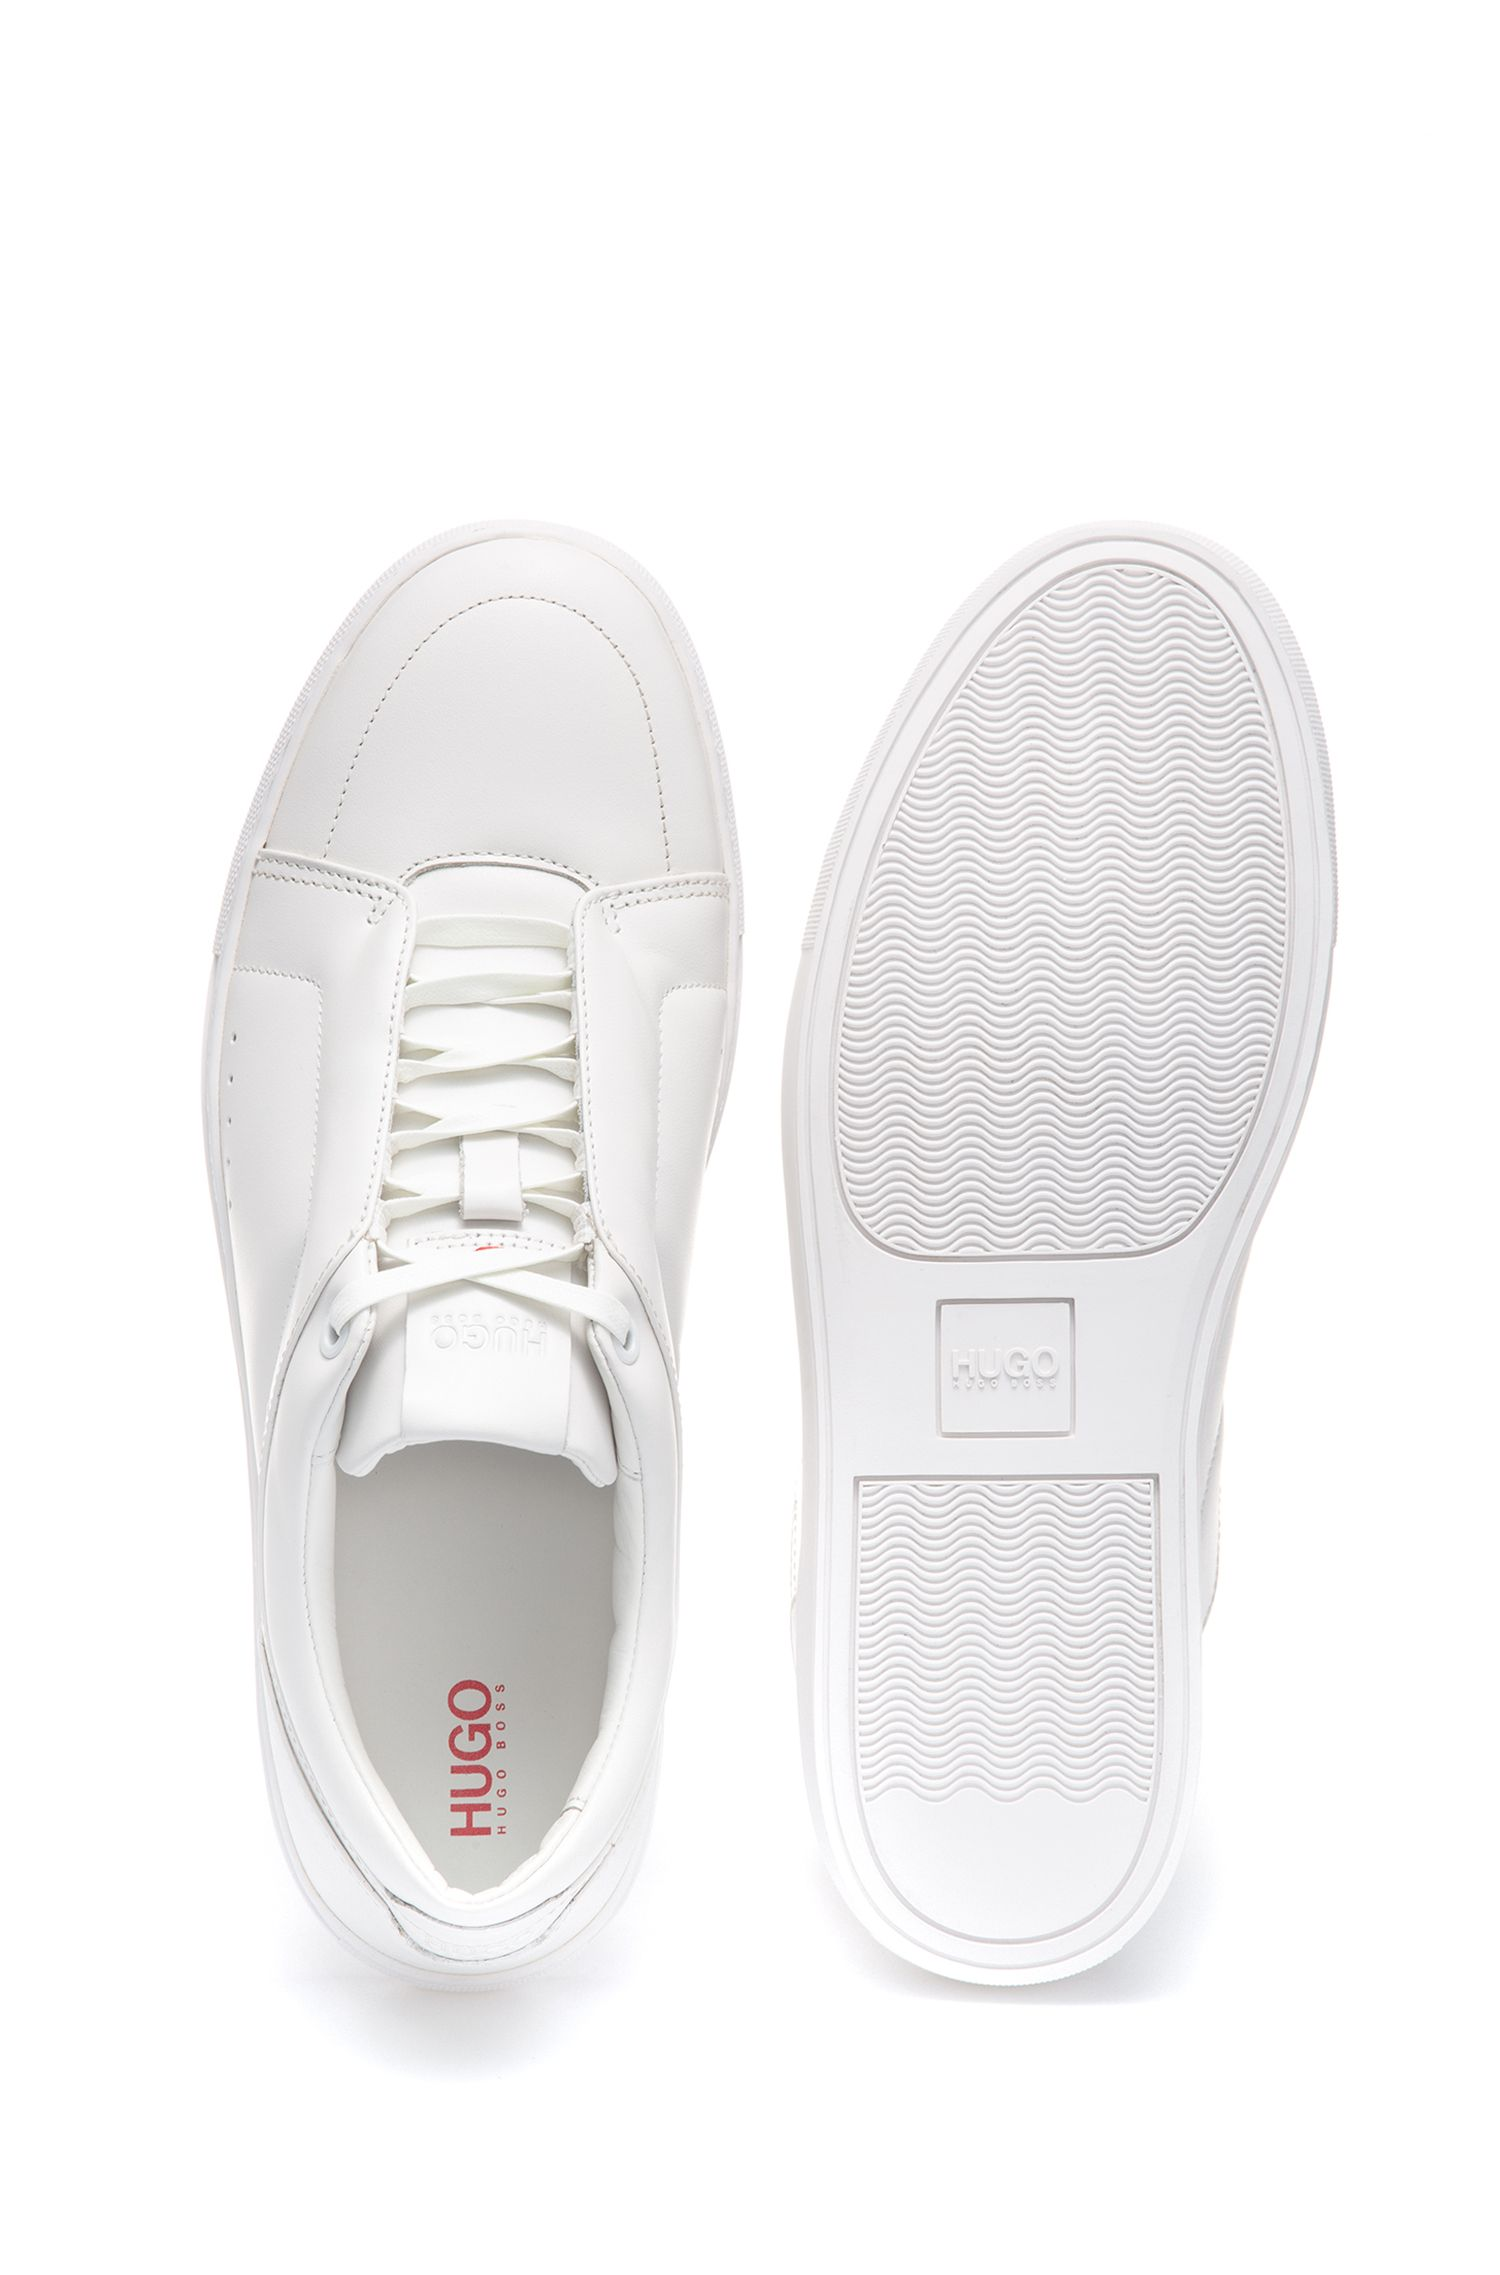 Low-top sneakers in calf leather with lace-up detail, White